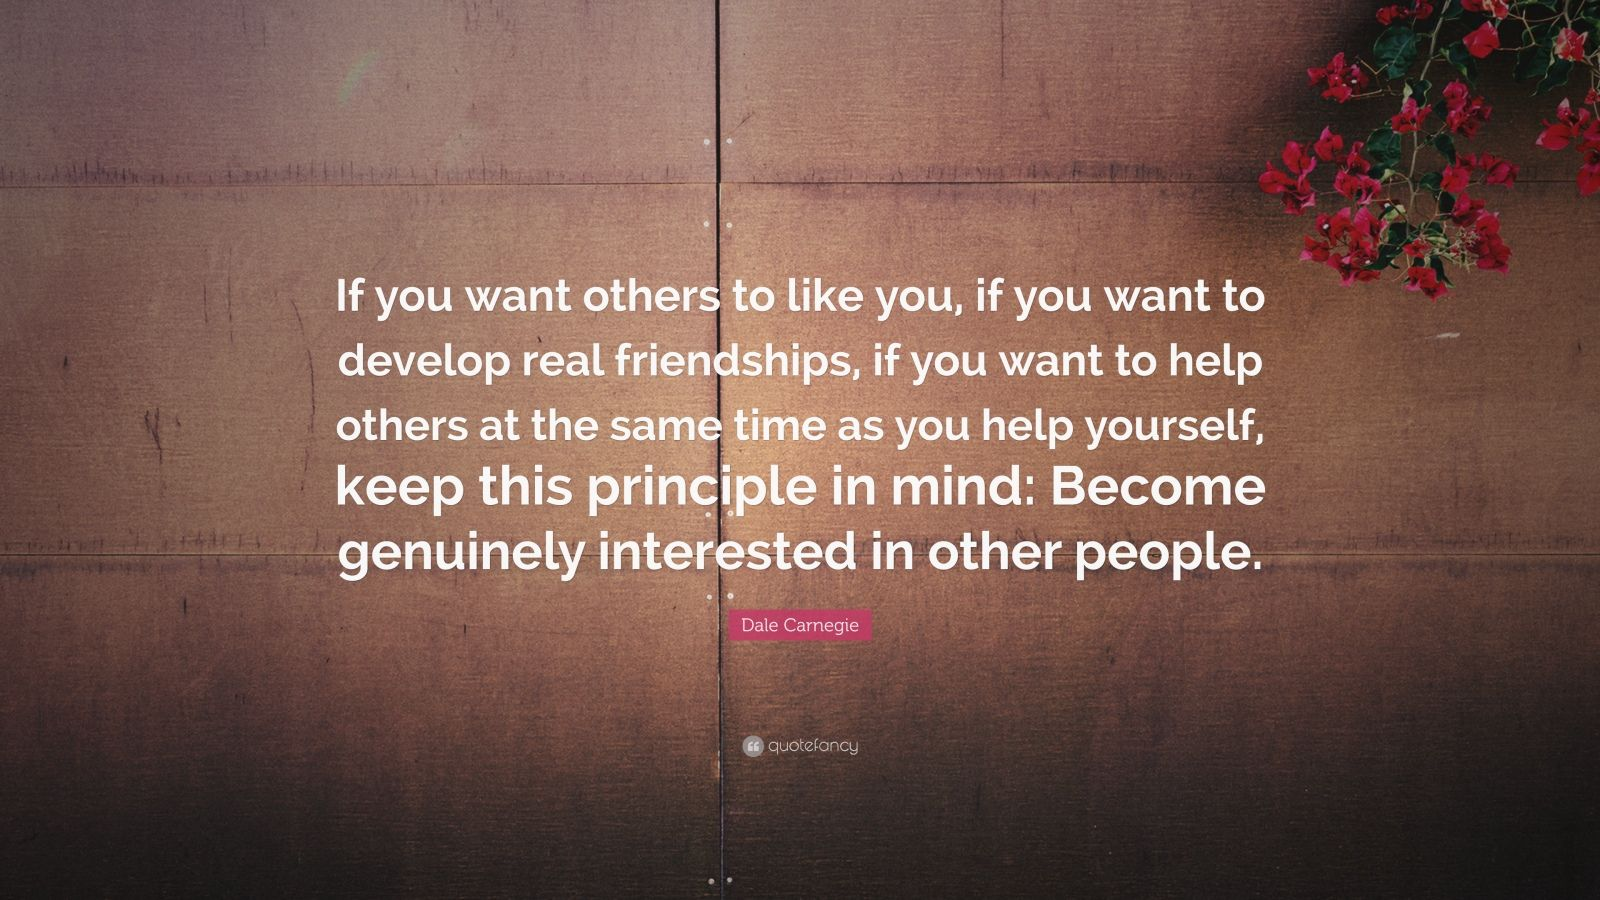 "Dale Carnegie Quote: ""If you want others to like you, if you want to develop real friendships, if you want to help others at the same time as you help yourself, keep this principle in mind: Become genuinely interested in other people."""